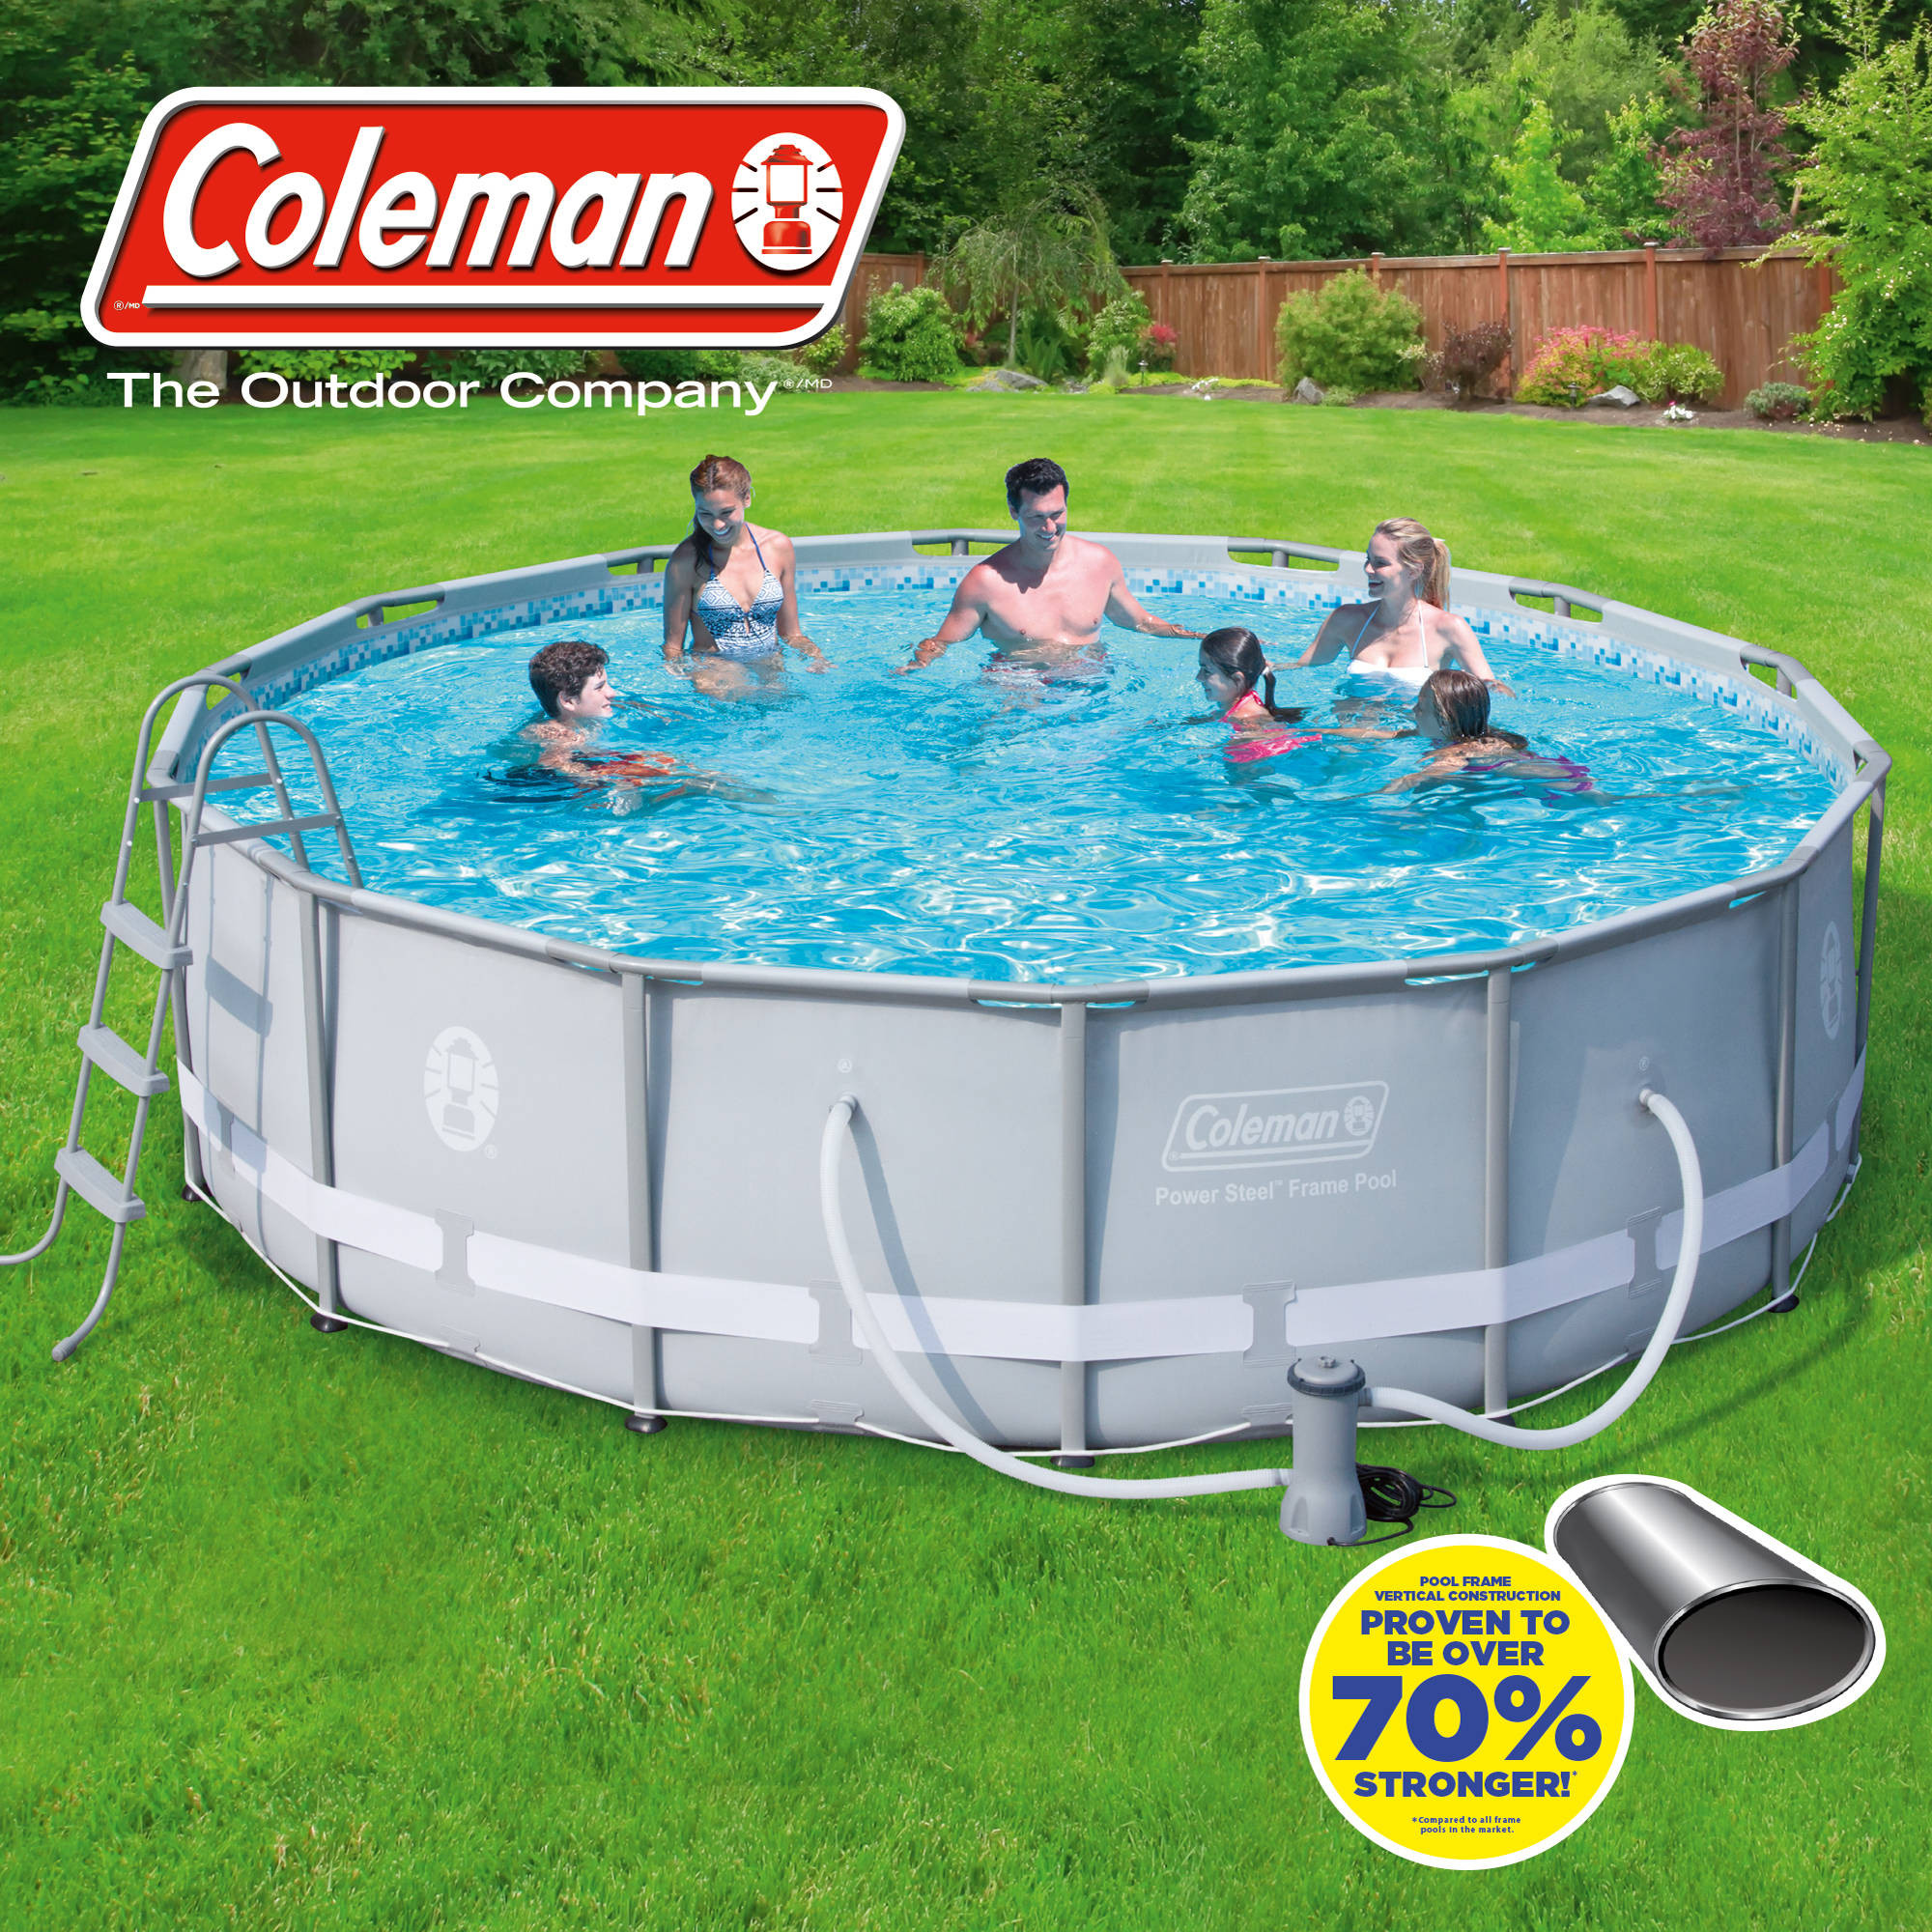 """Best ideas about Coleman Above Ground Pool . Save or Pin Coleman 14 x 42"""" Power Steel Frame Ground Swimming Now."""